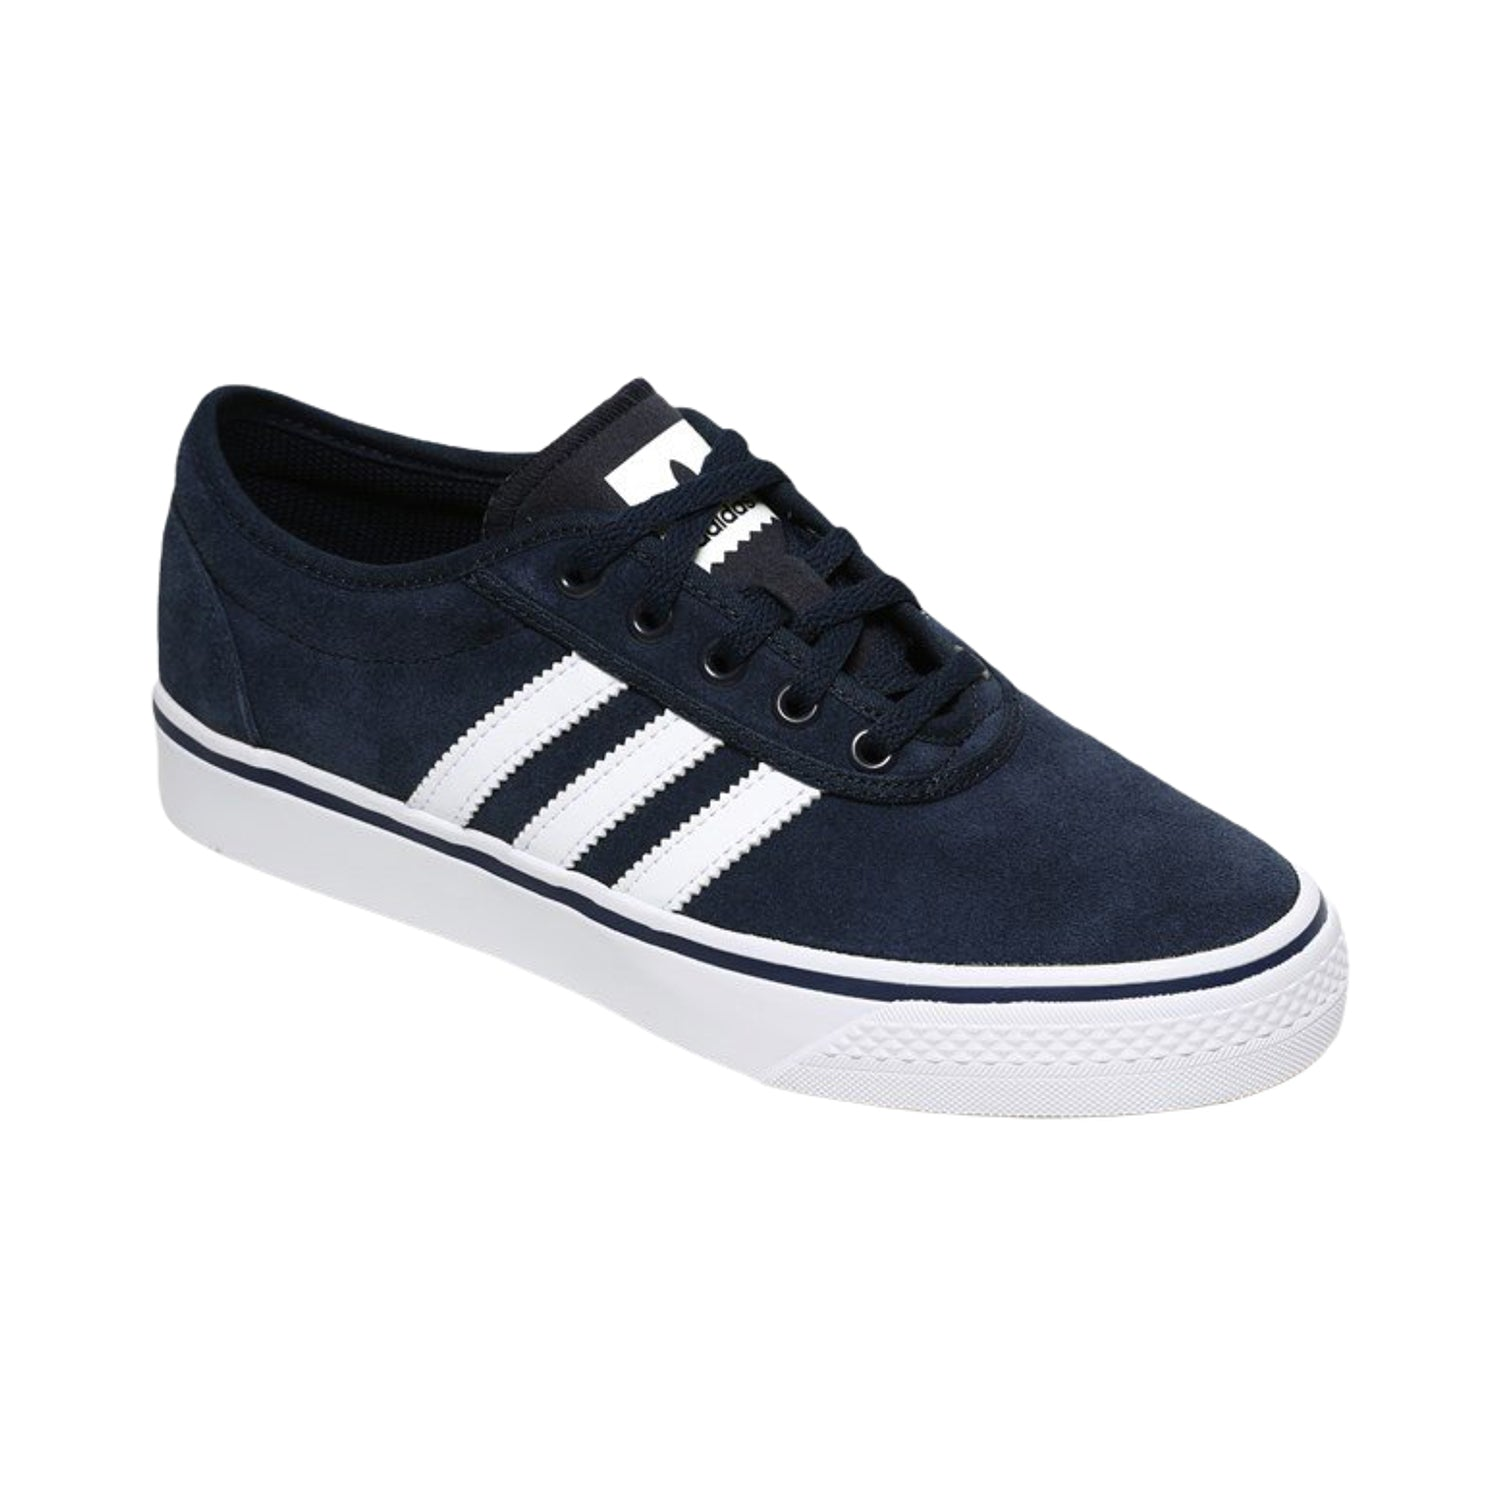 Adidas Adi-Ease Navy/White